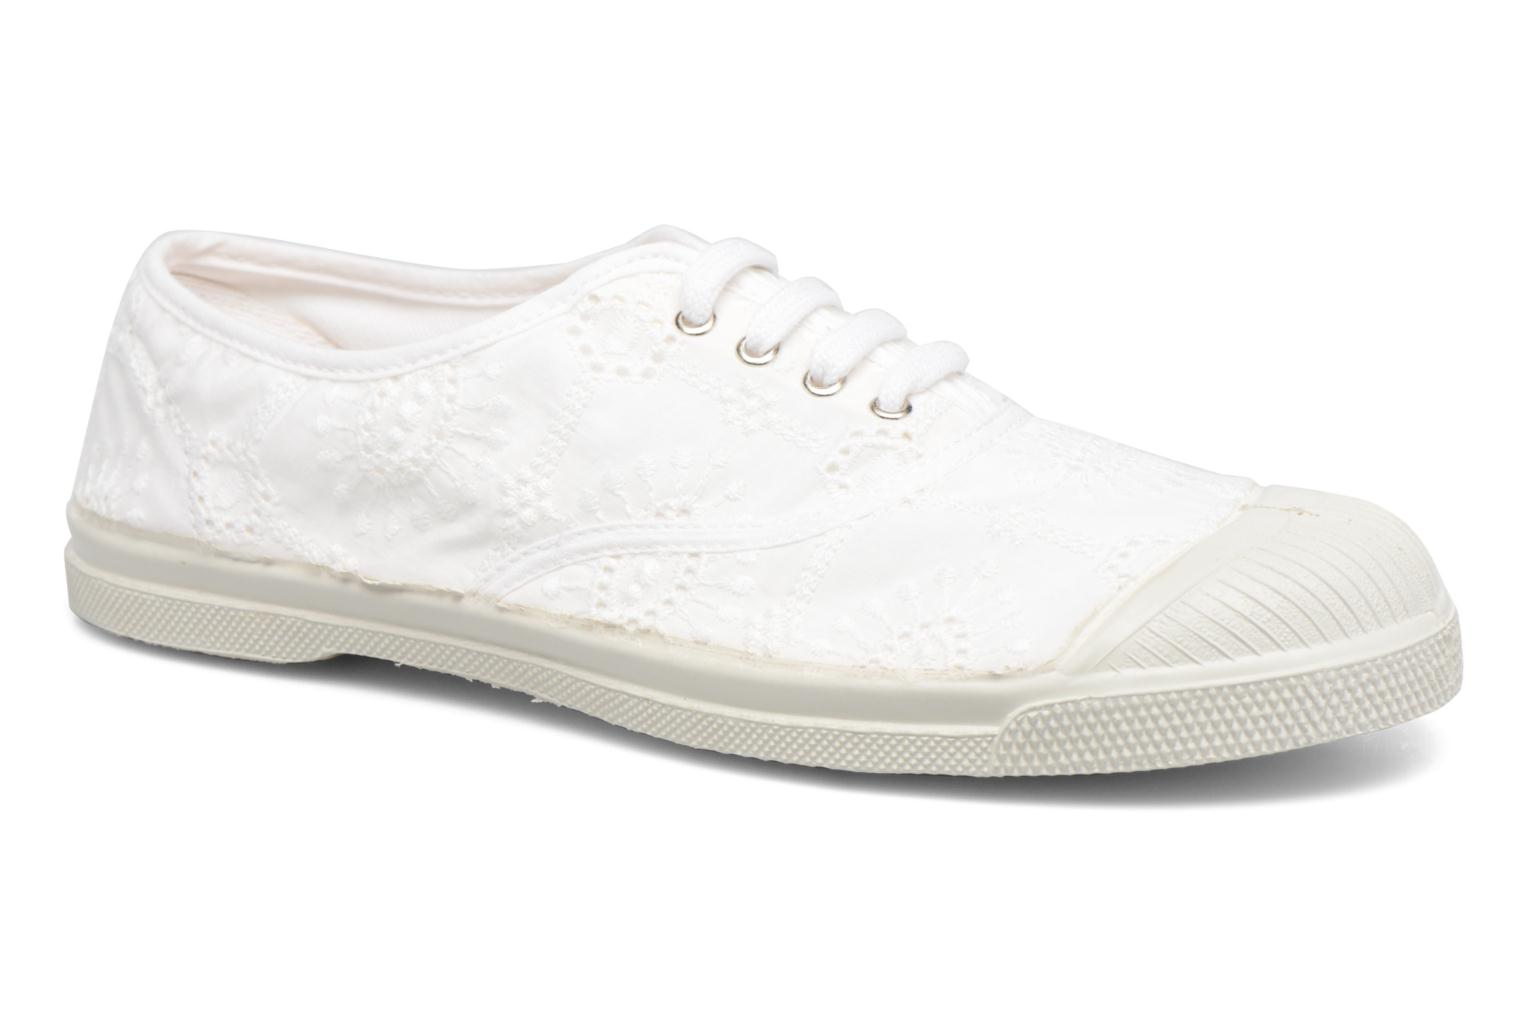 Tennis Broderie Anglaise Blanc 2